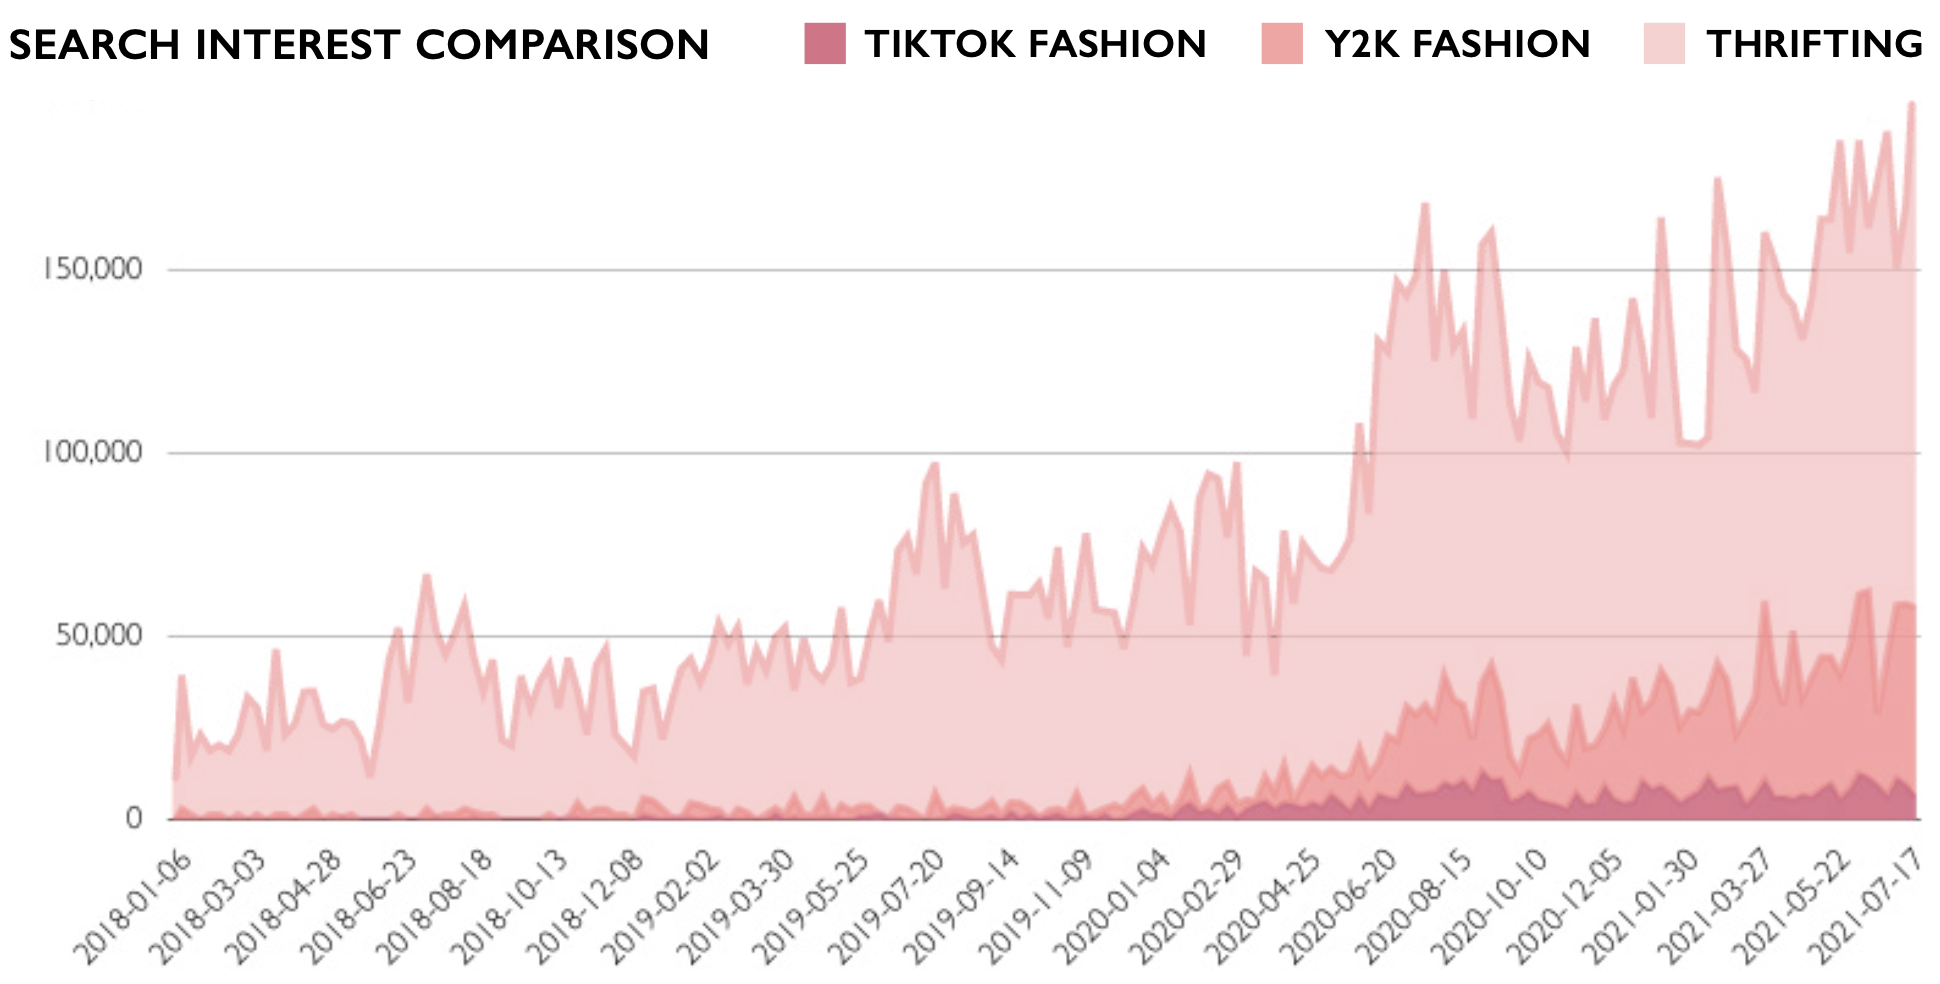 Searches for Y2K